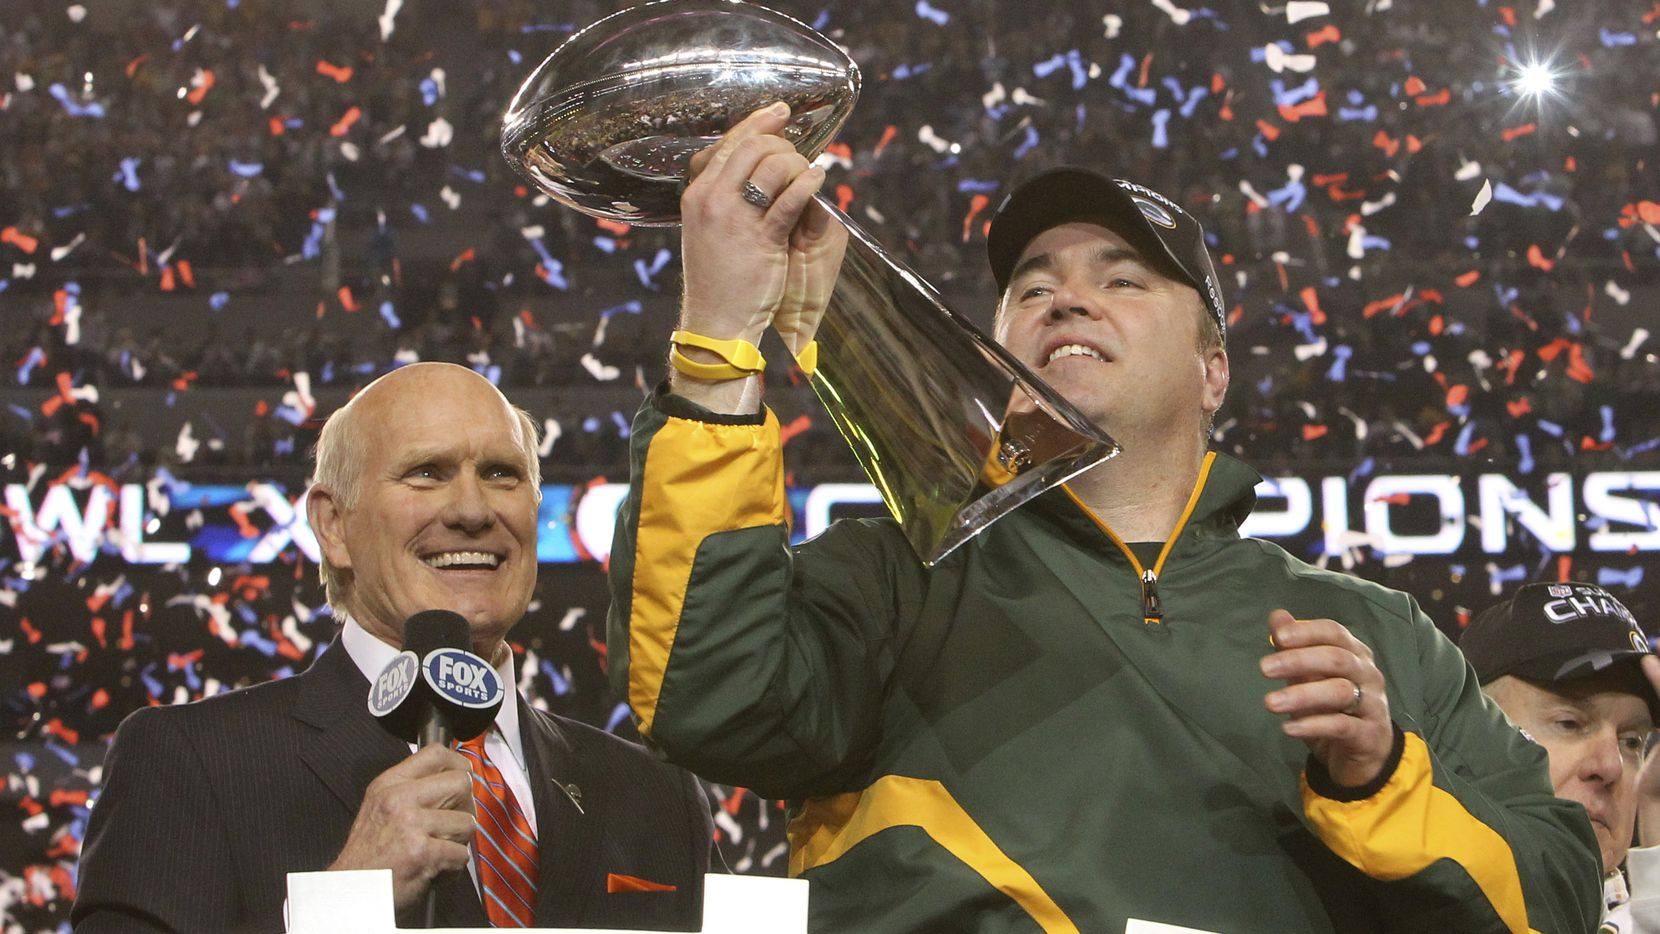 Green Bay Packers head coach Mike McCarthy admired the Lombardi Trophy as Terry Bradshaw looks on after Super Bowl XLV at Cowboys Stadium in Arlington, Texas, on Sunday, February 6, 2011. Green Bay won the game 31-25.